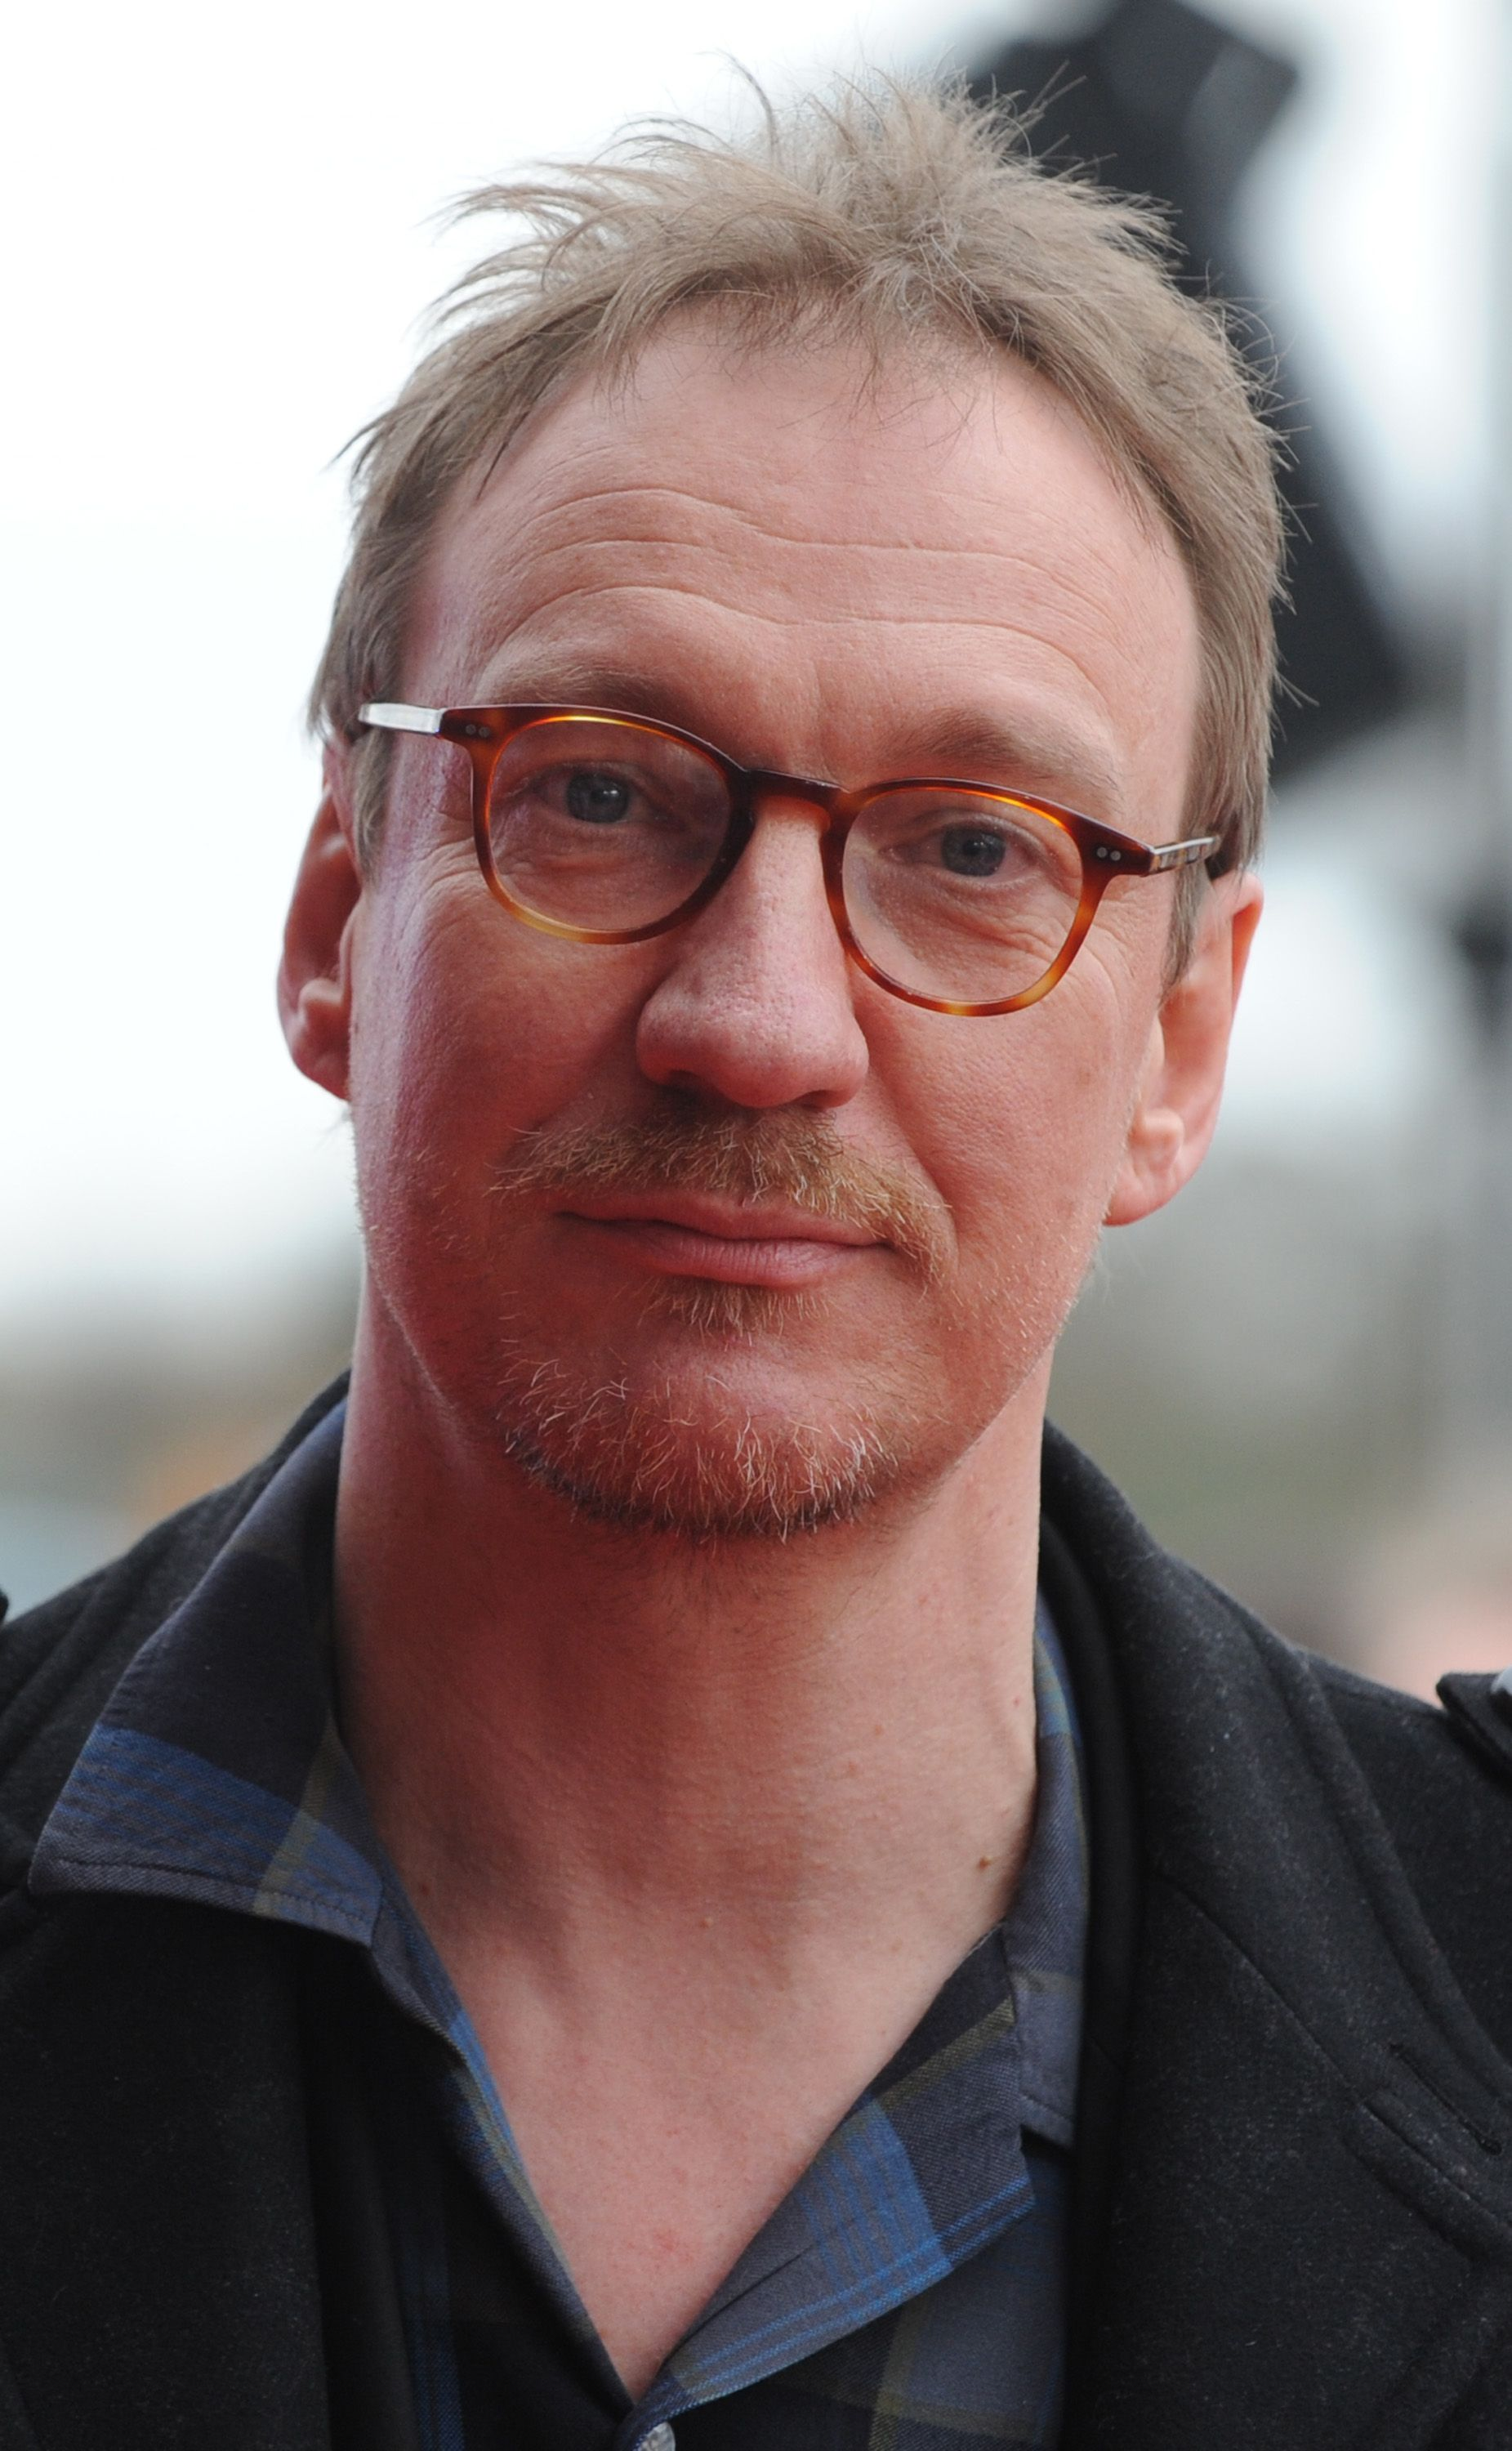 David Thewlis, 2017 clothing style & tips of the attractive calm  actor & Pisces